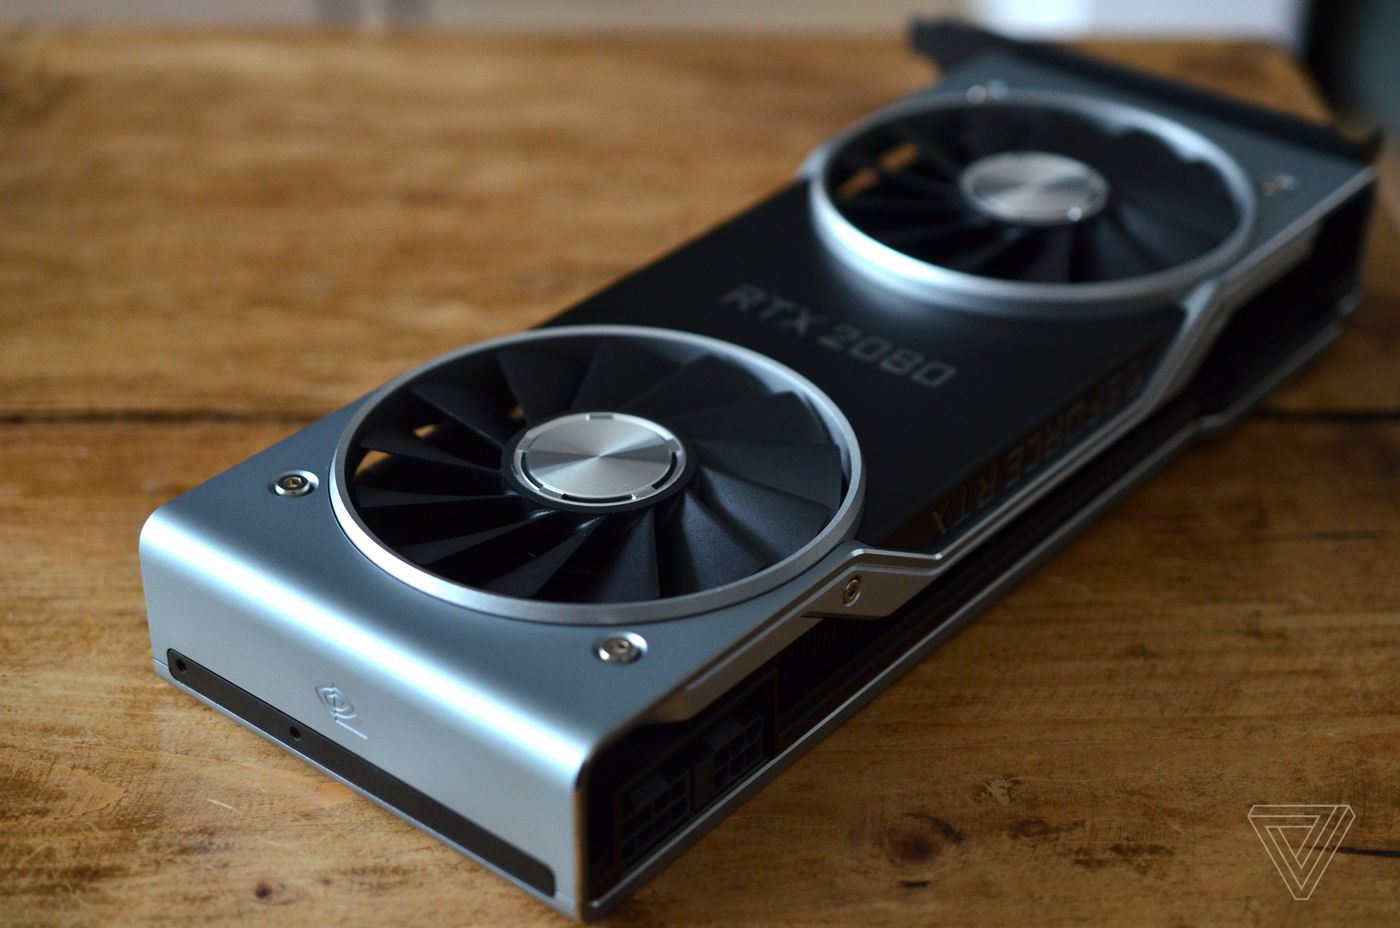 Nvidia rethinks the graphics card with the RTX 2080 - The Verge